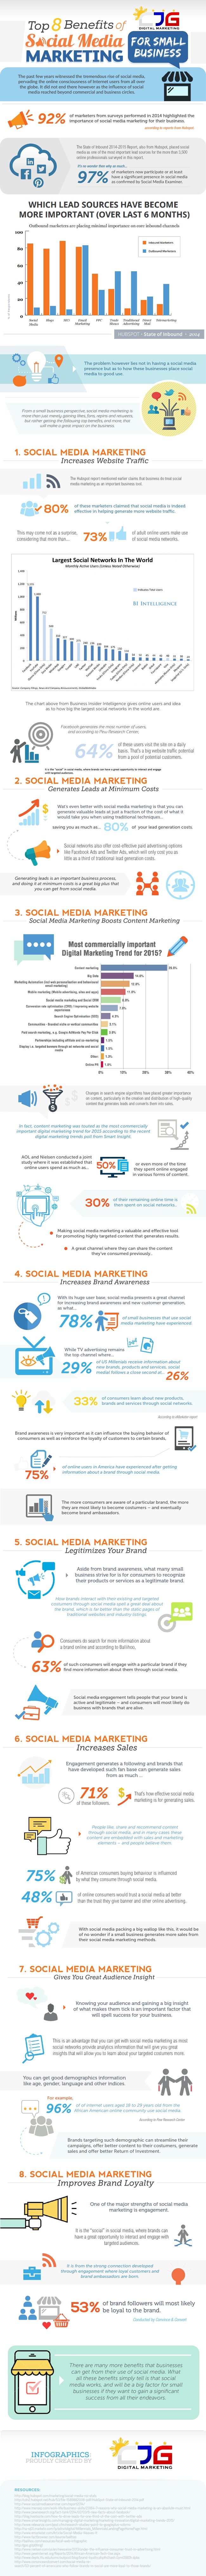 Top-8-Benefits-of-Social-Media-Marketing-for-Small-Business